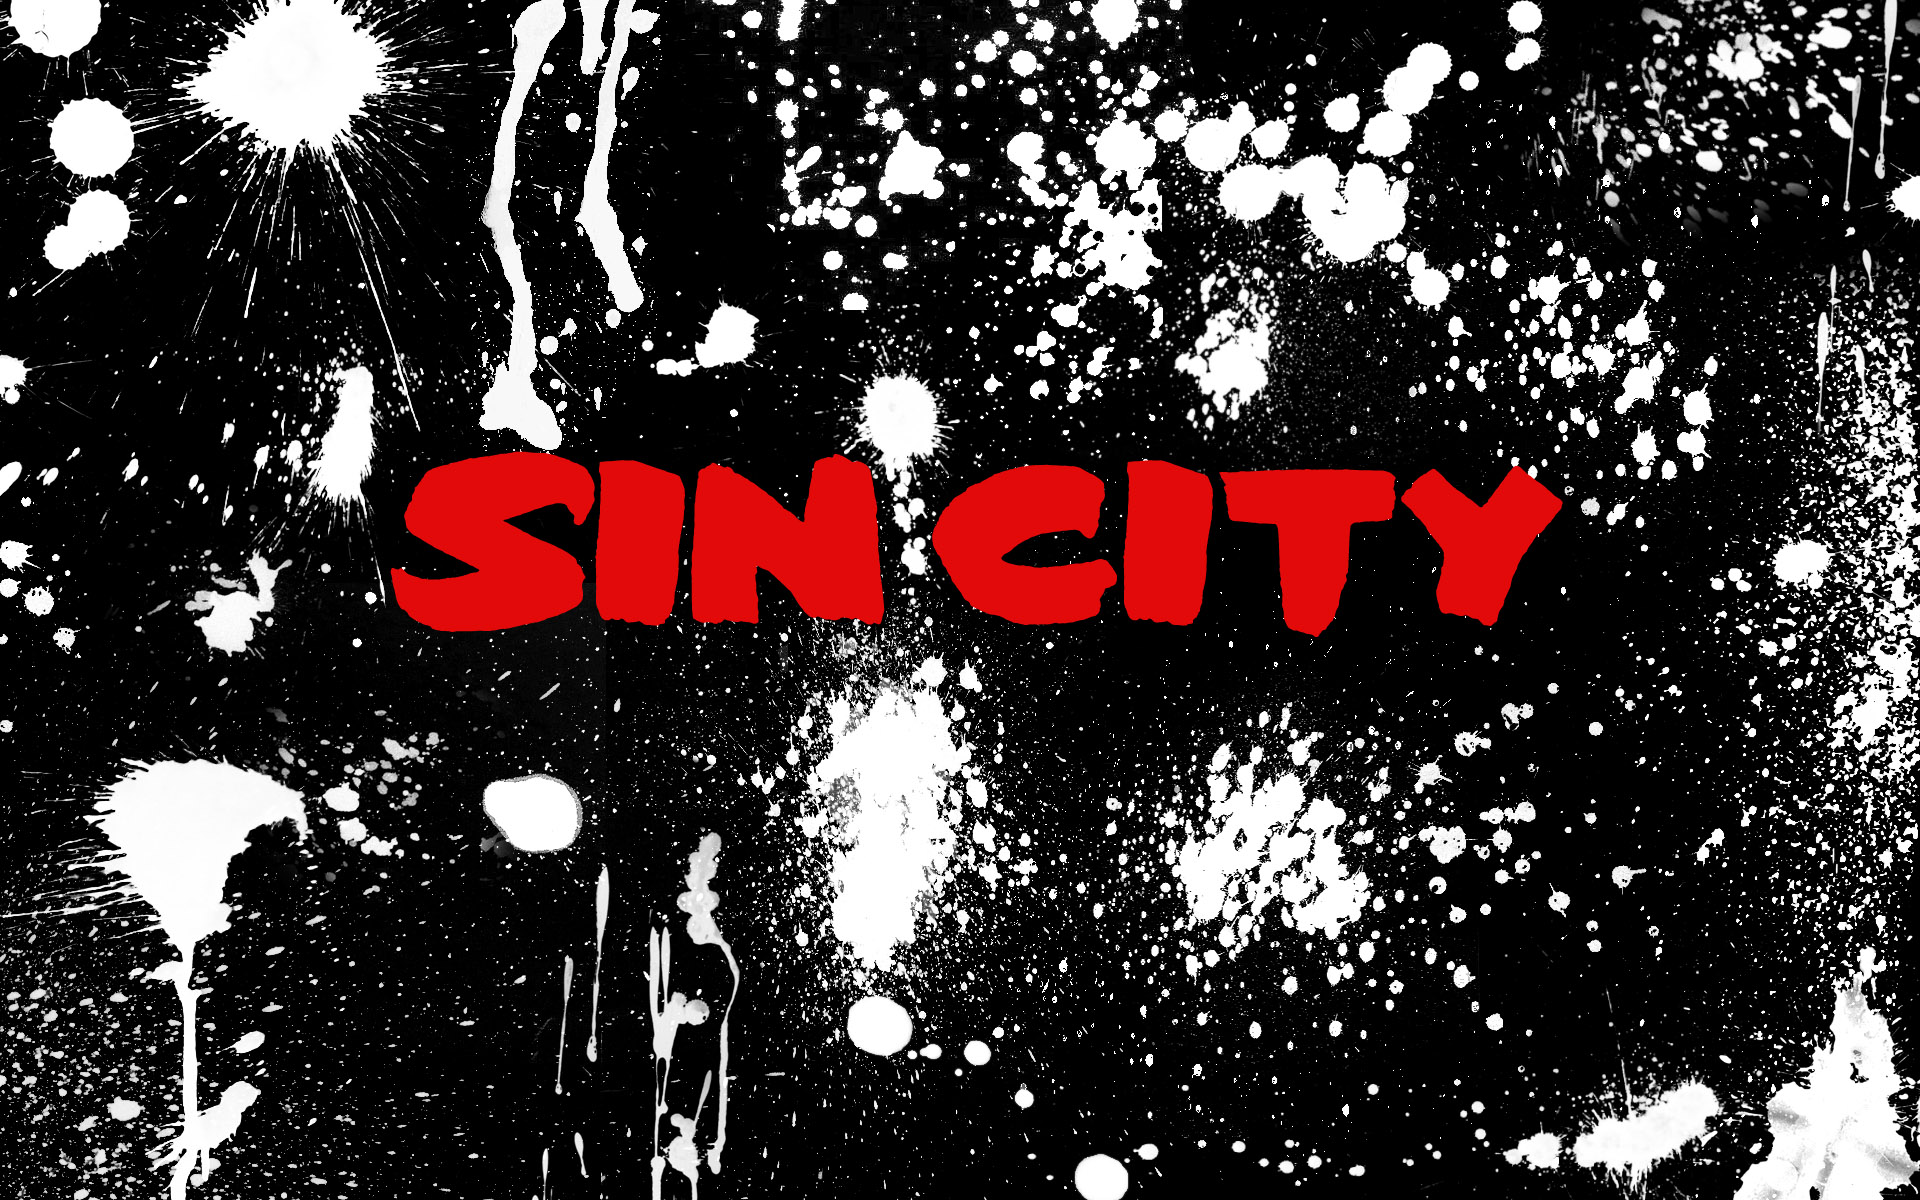 Sin City wallpaper by ConceptJunkie124